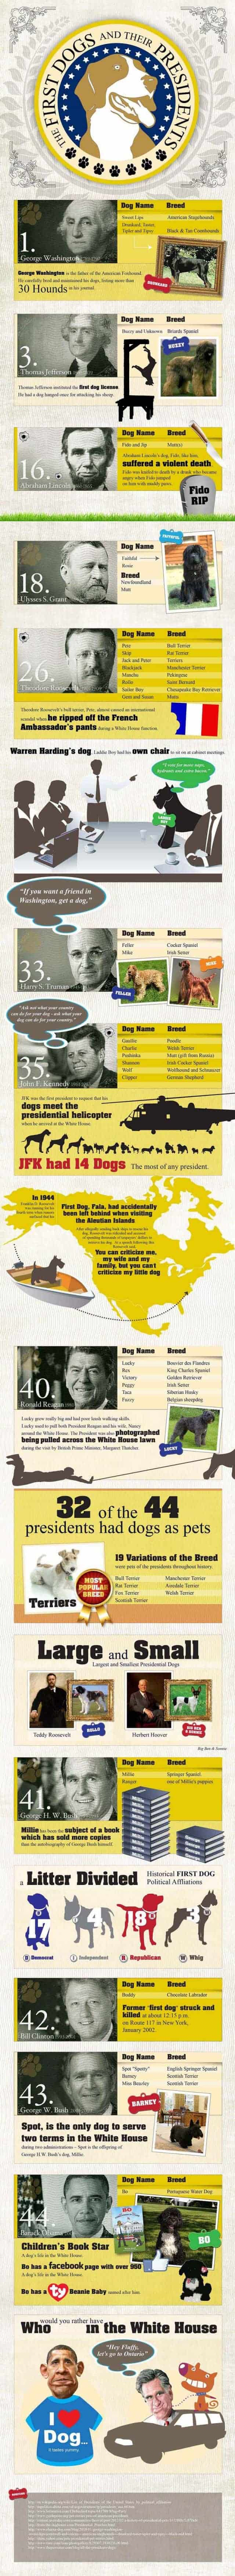 First man's best friend: The dogs of the presidents [Infographic]